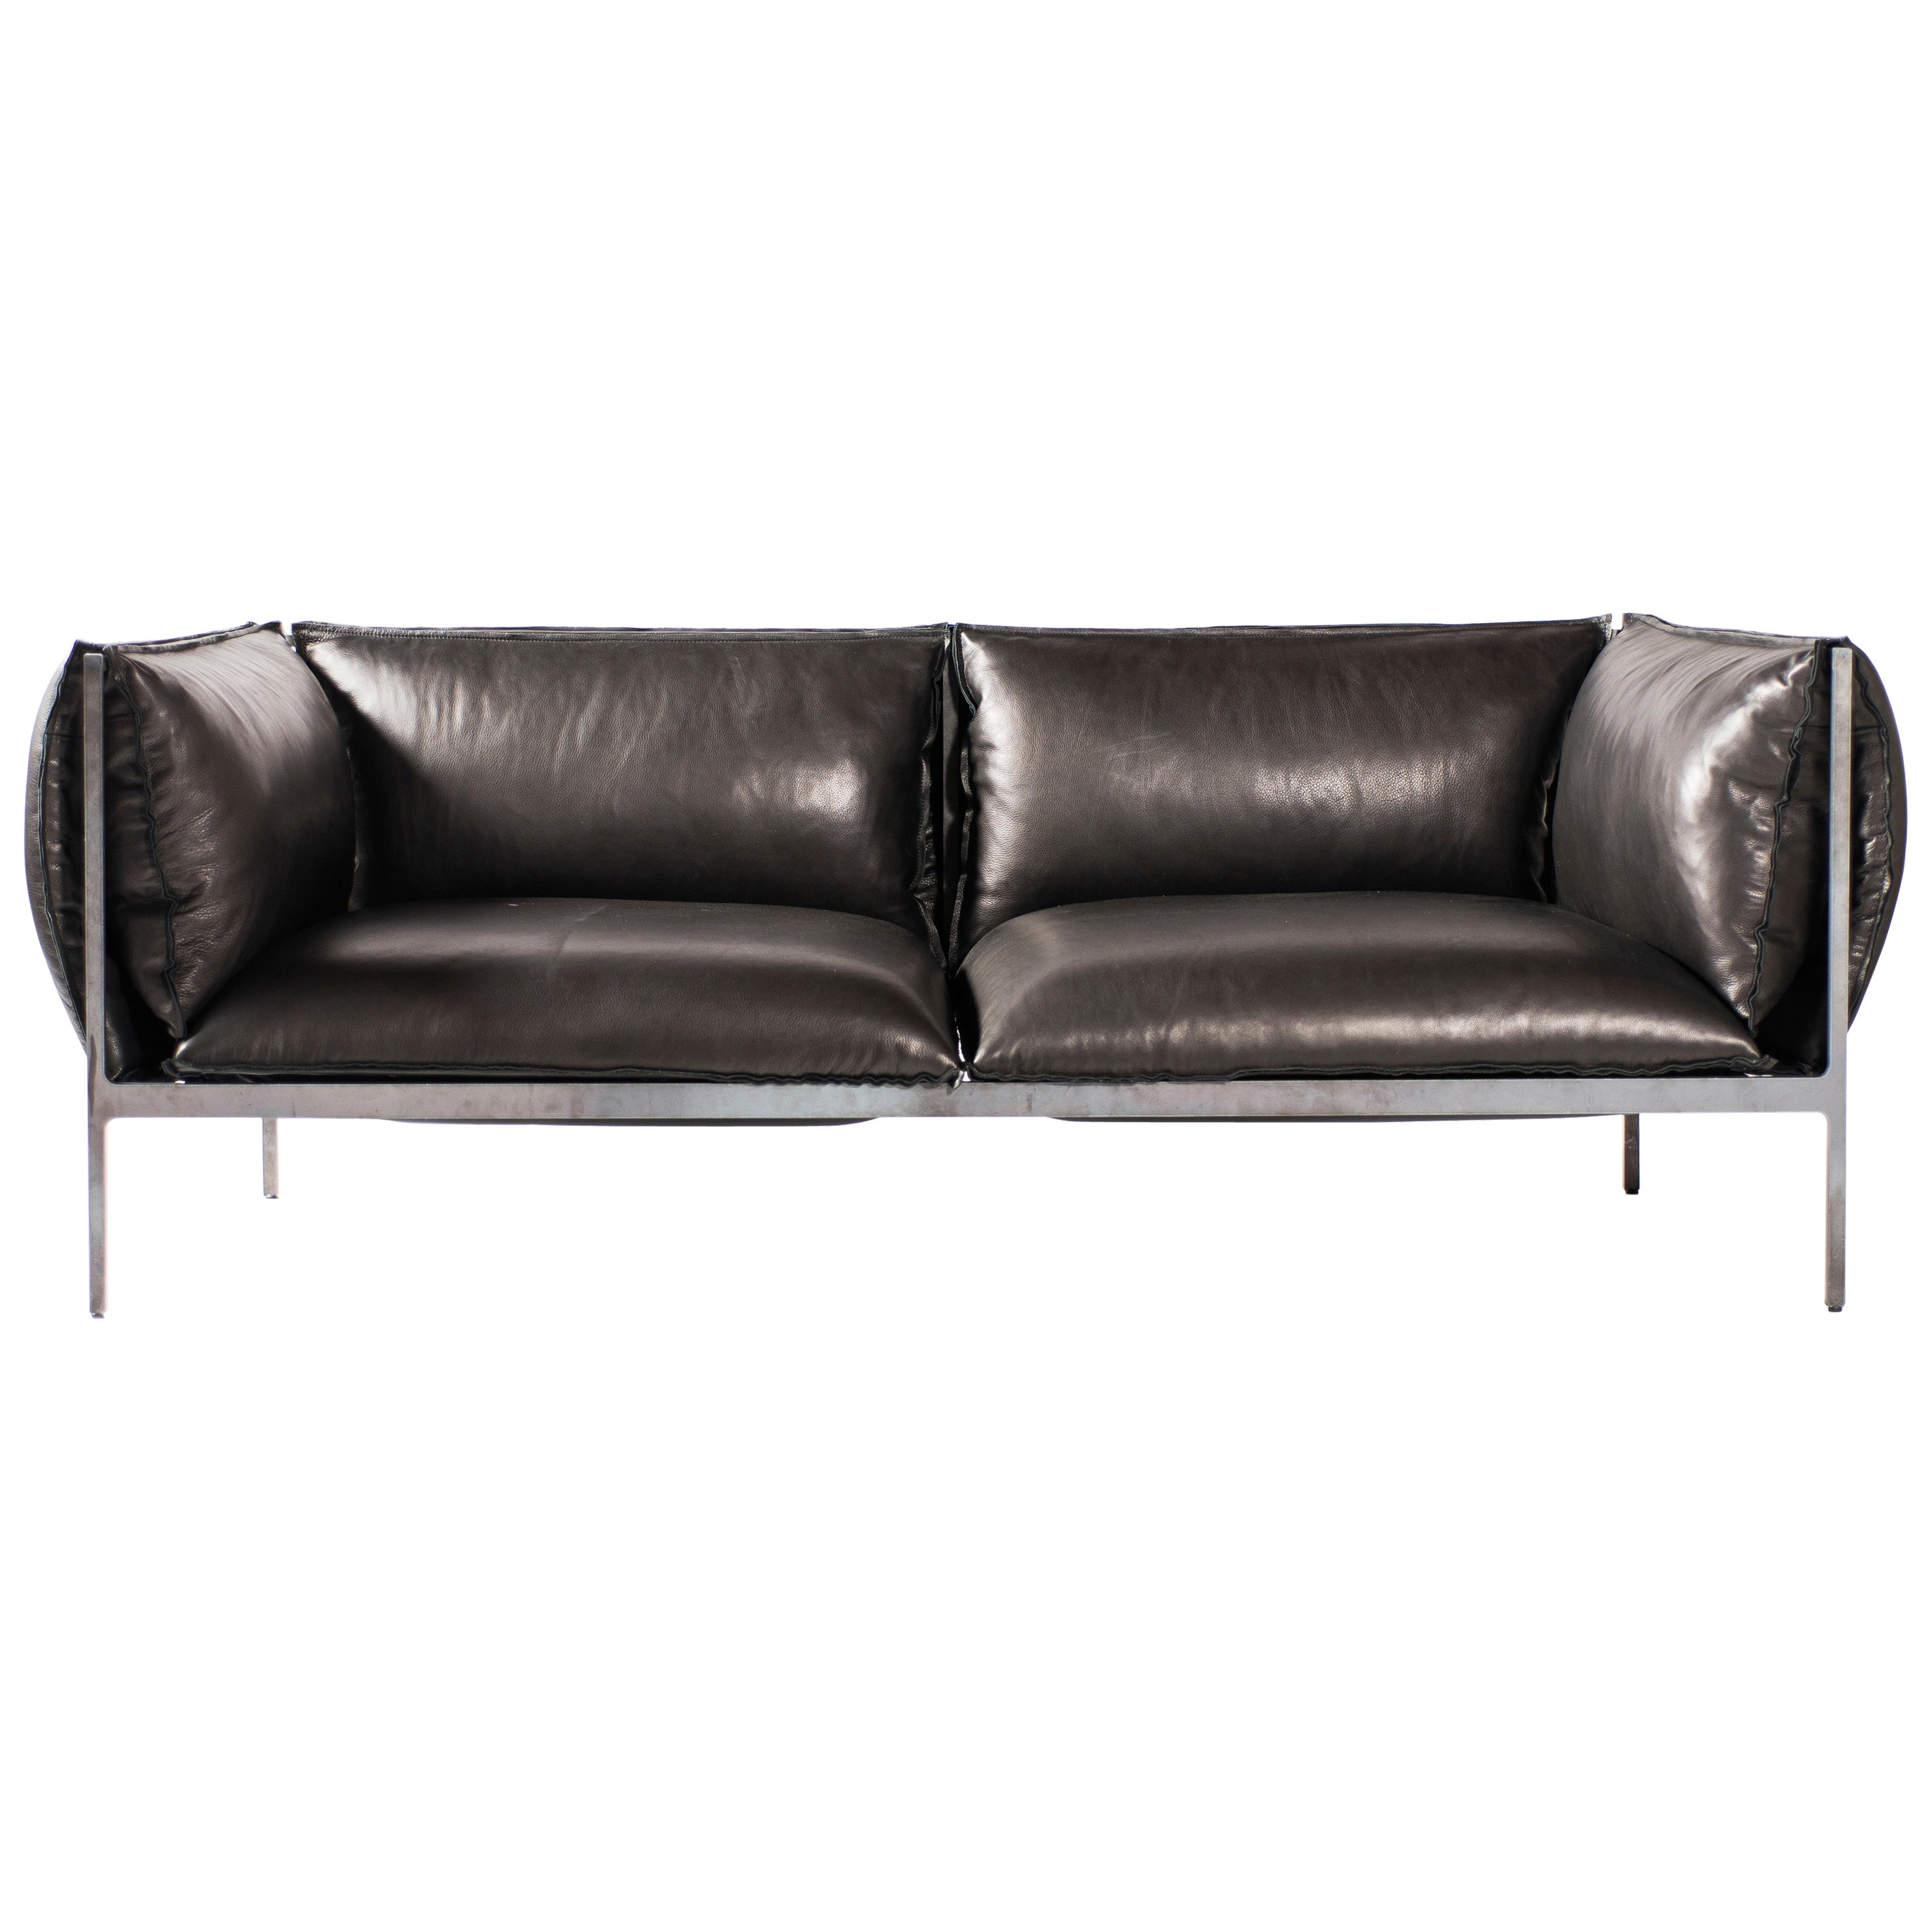 Double-Seat Sofa in Milled Black Leather and Oiled Laser-Cut Steel